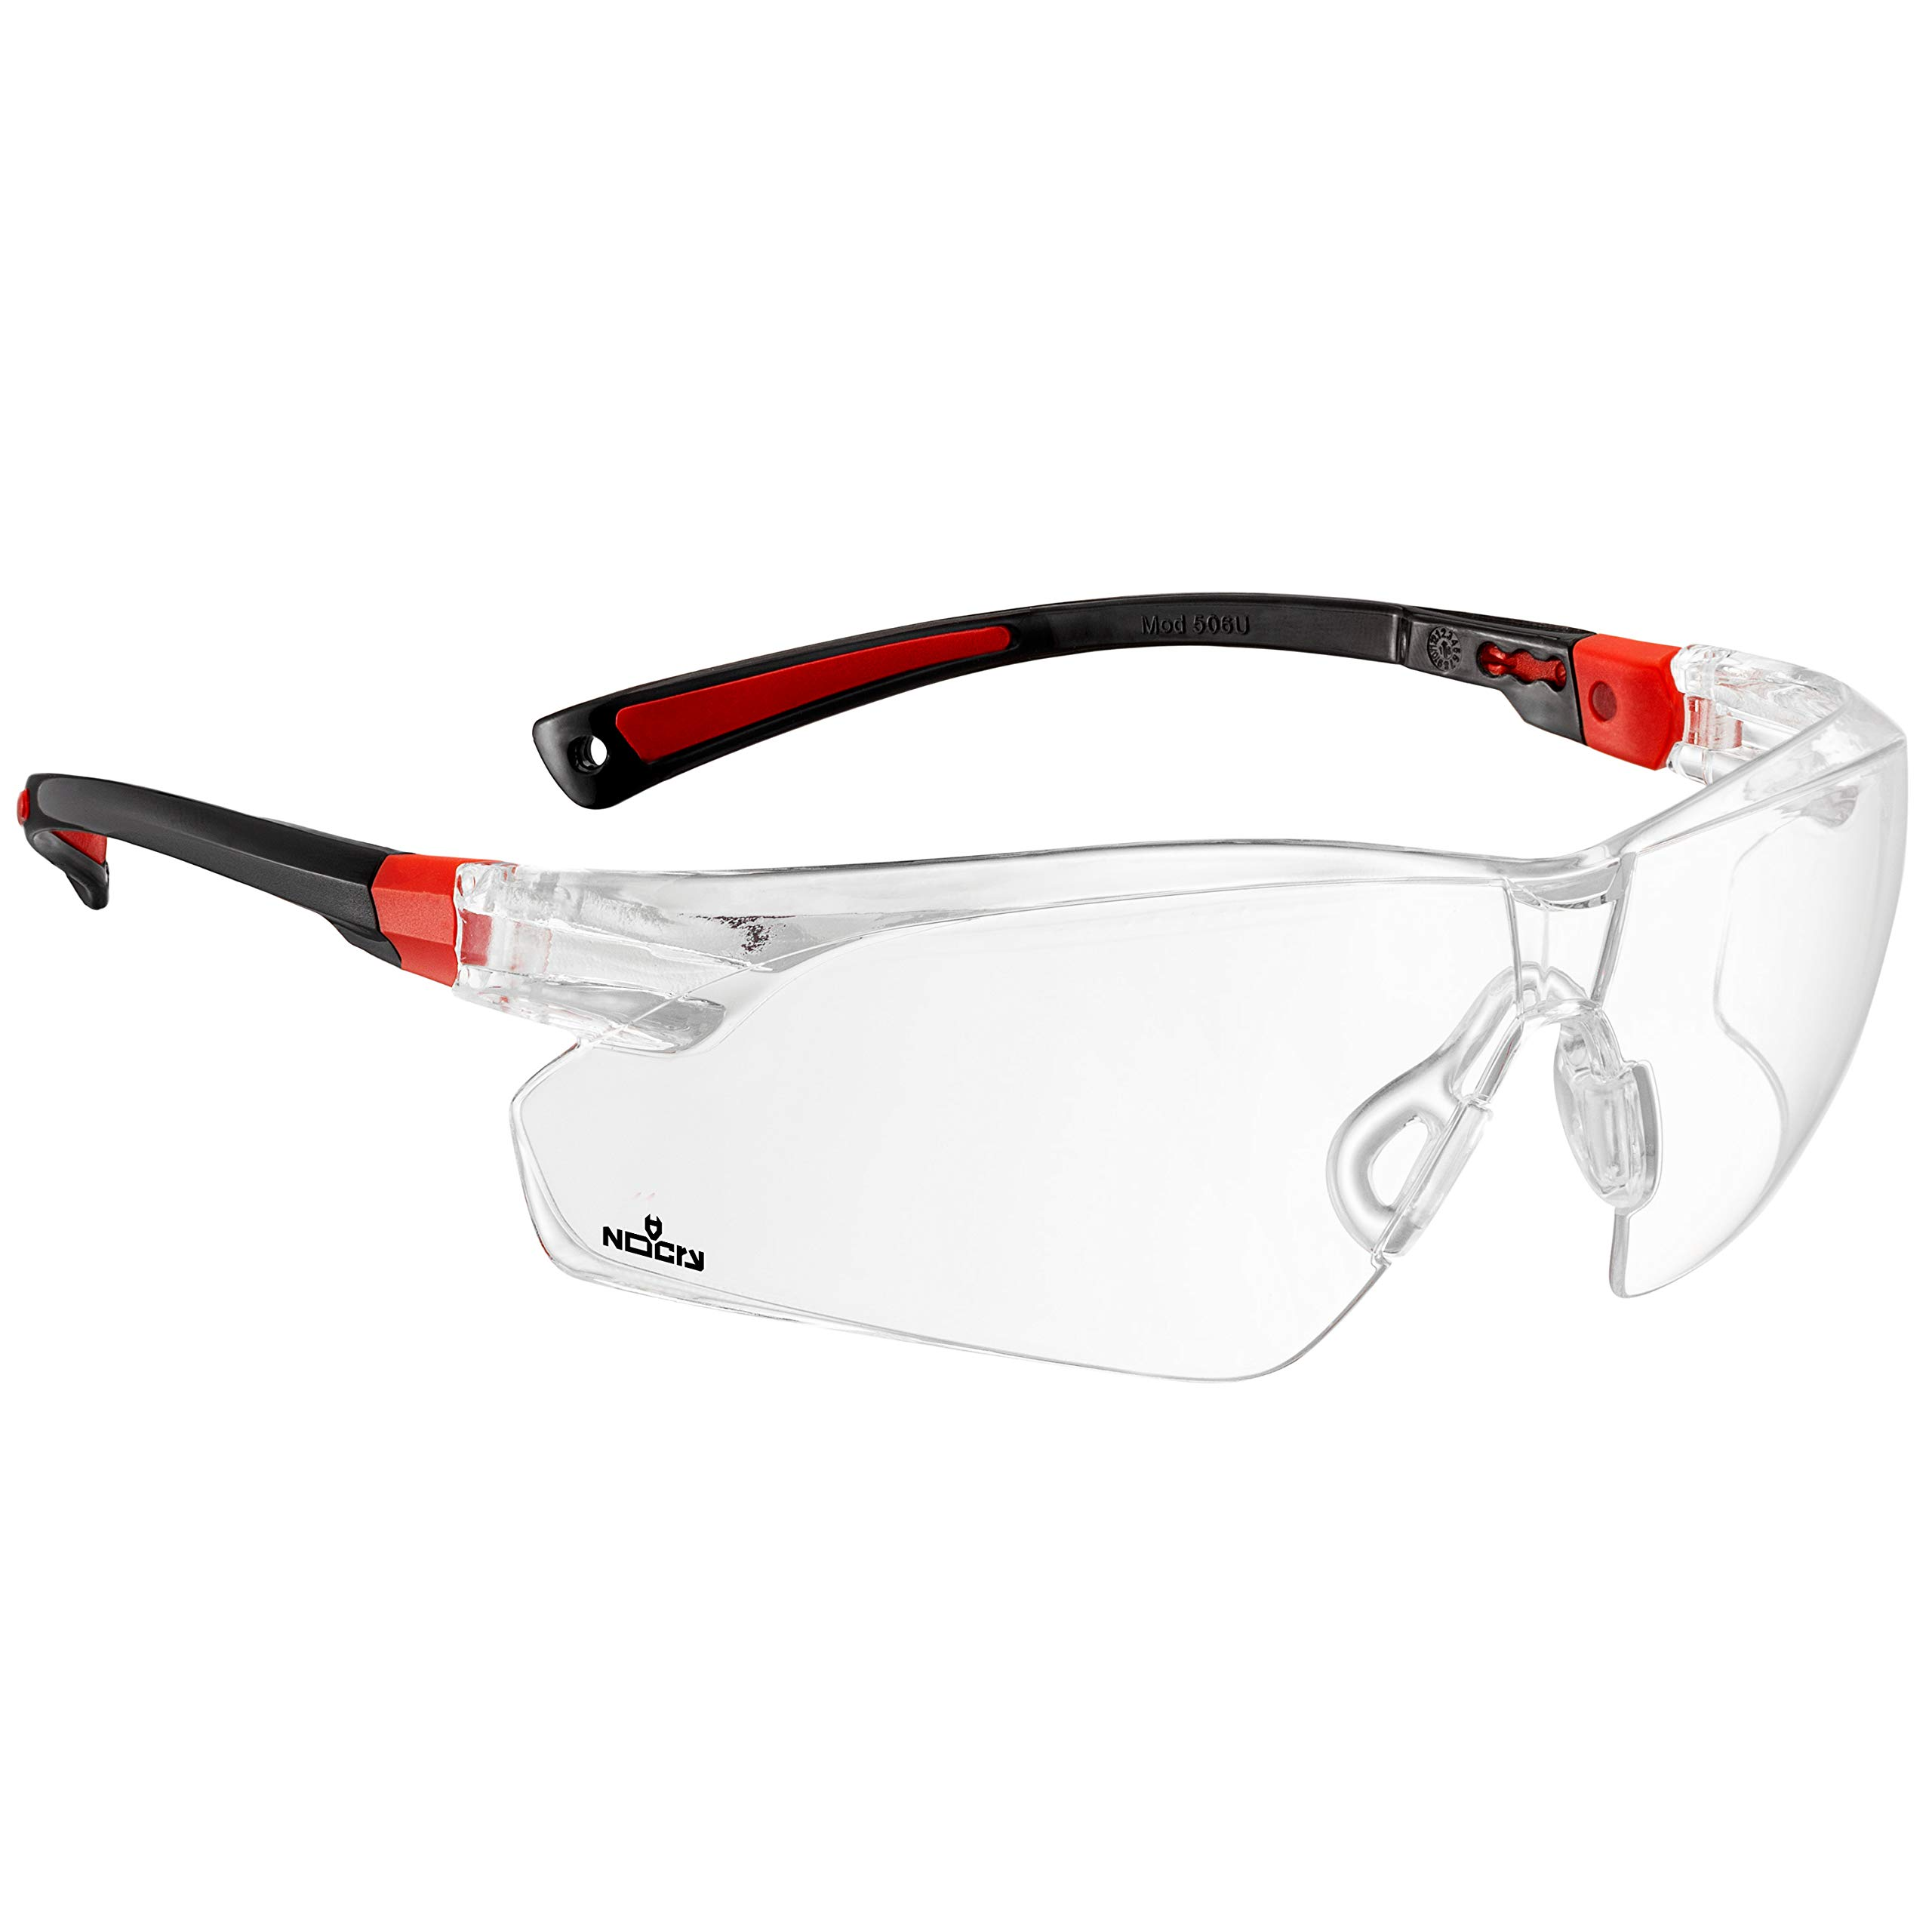 NoCry Safety Glasses with Clear Anti Fog Scratch Resistant Wrap-Around Lenses and No-Slip Grips, UV Protection. Adjustable